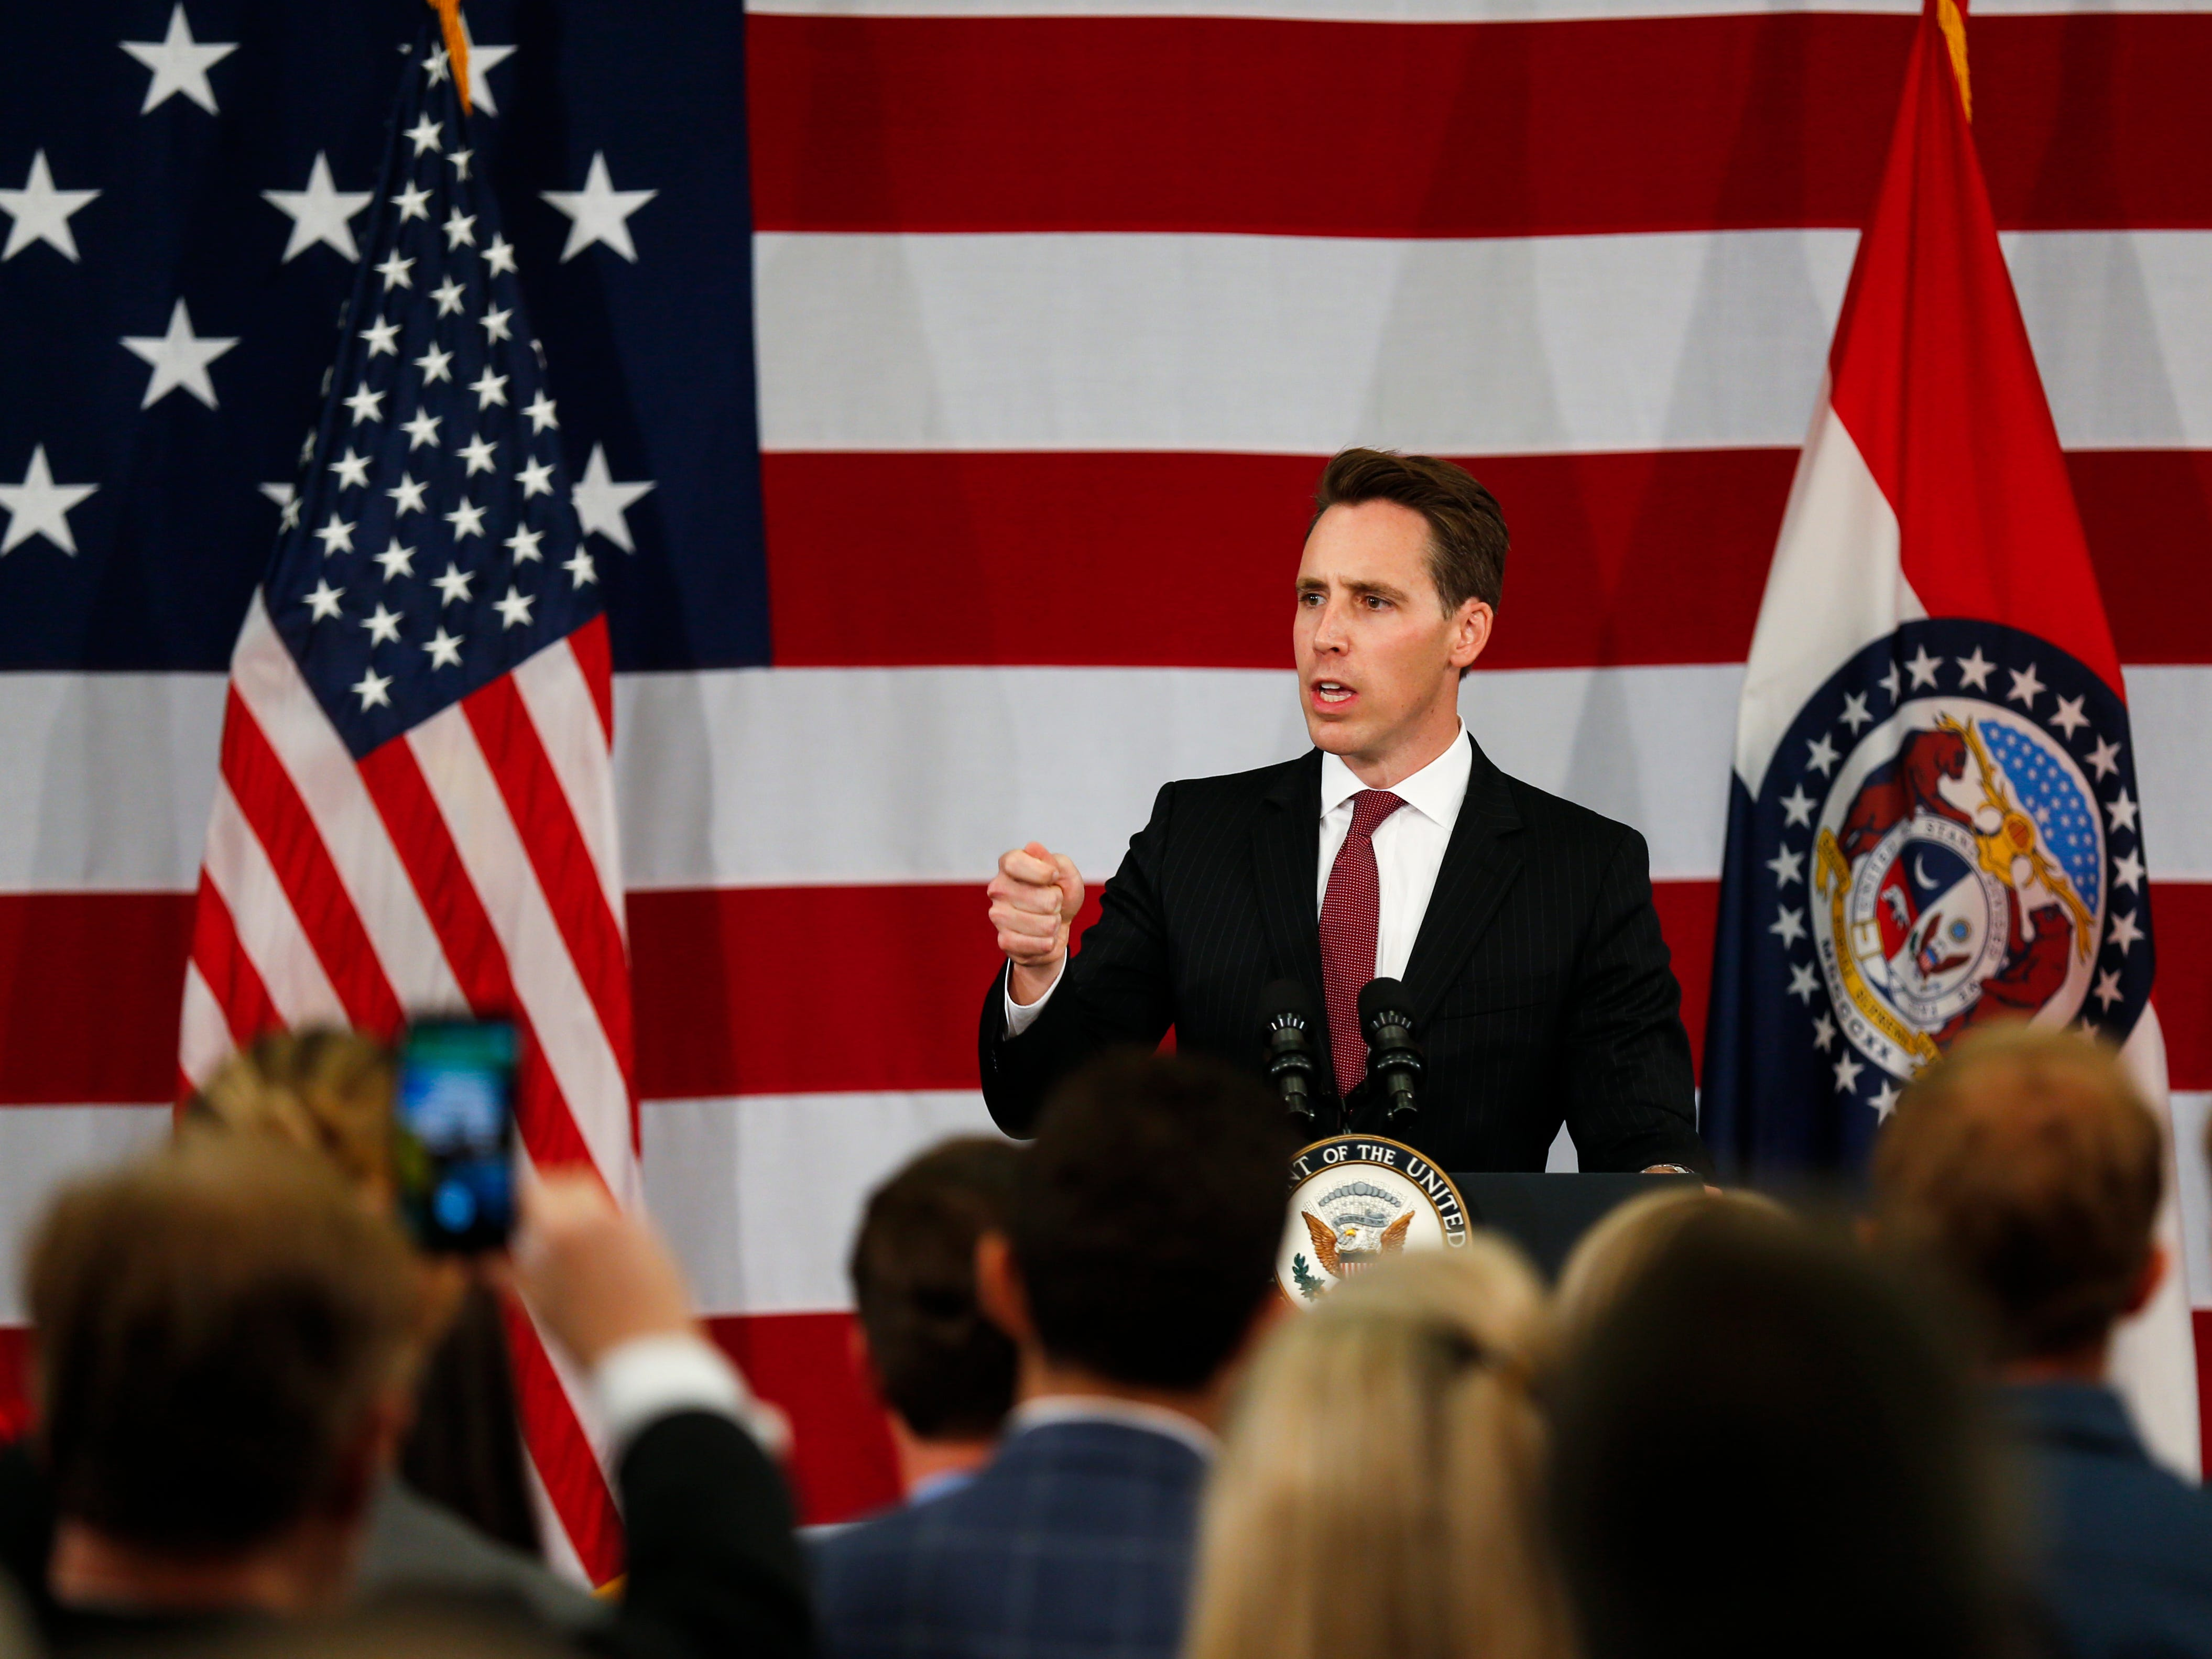 U.S. Senate candidate Josh Hawley speaks at a private fundraising event with Vice President Mike Pence at the Oasis Hotel & Convention Center in Springfield, Mo. on Monday, Oct. 8, 2018.